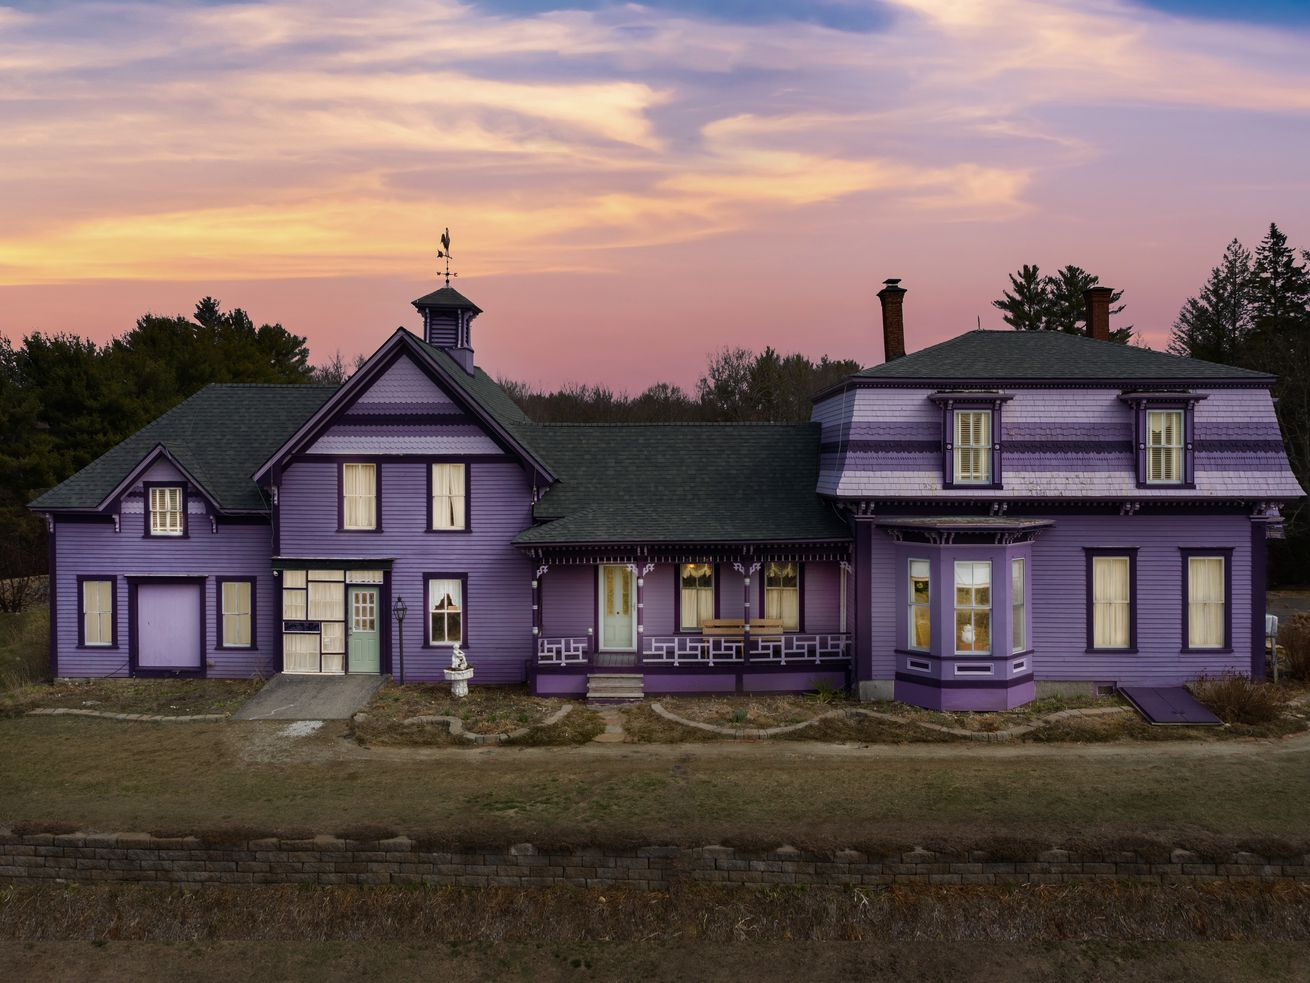 An exterior view of a Victorian house painted in many shades of purple.